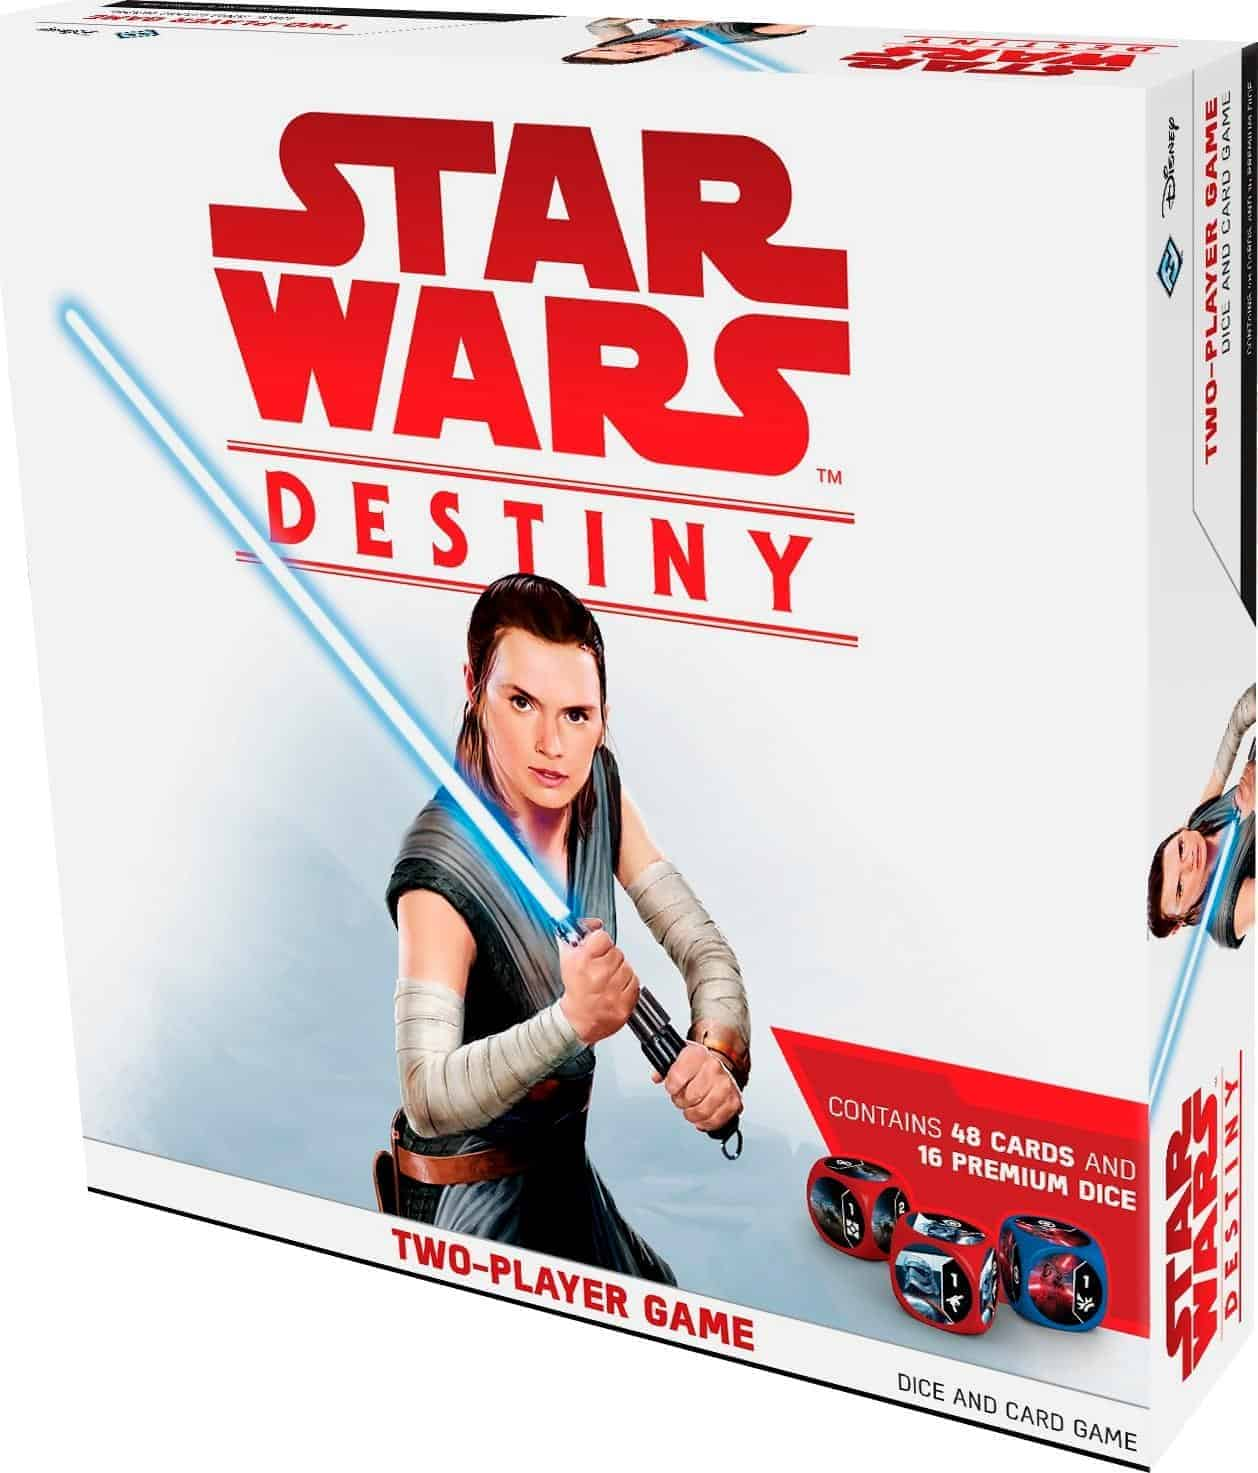 Star wars board games best hero to hero action around!